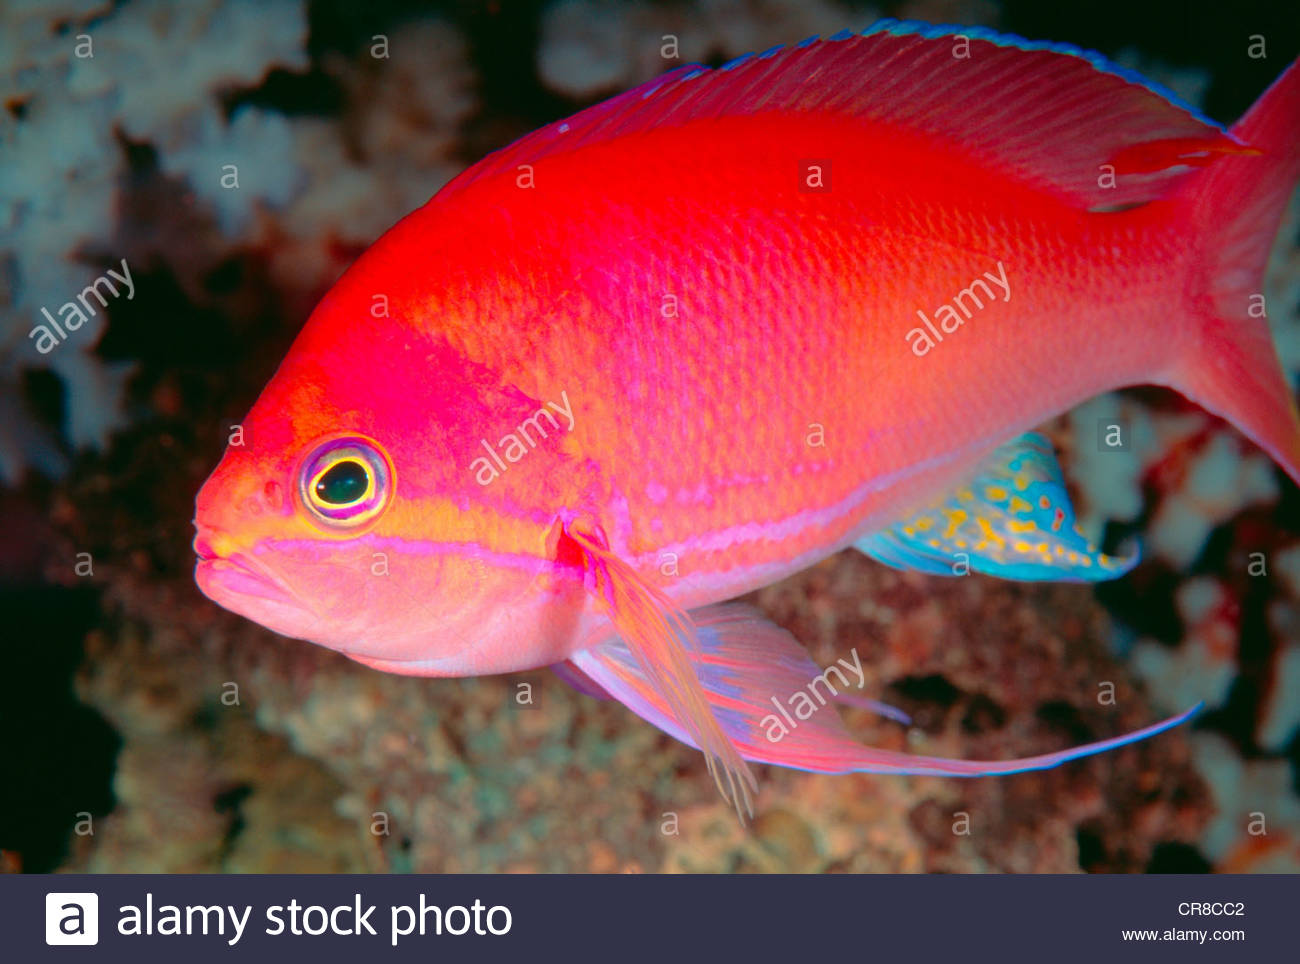 Close-up of a bright tropical fish Stock Photo: 48743186 - Alamy